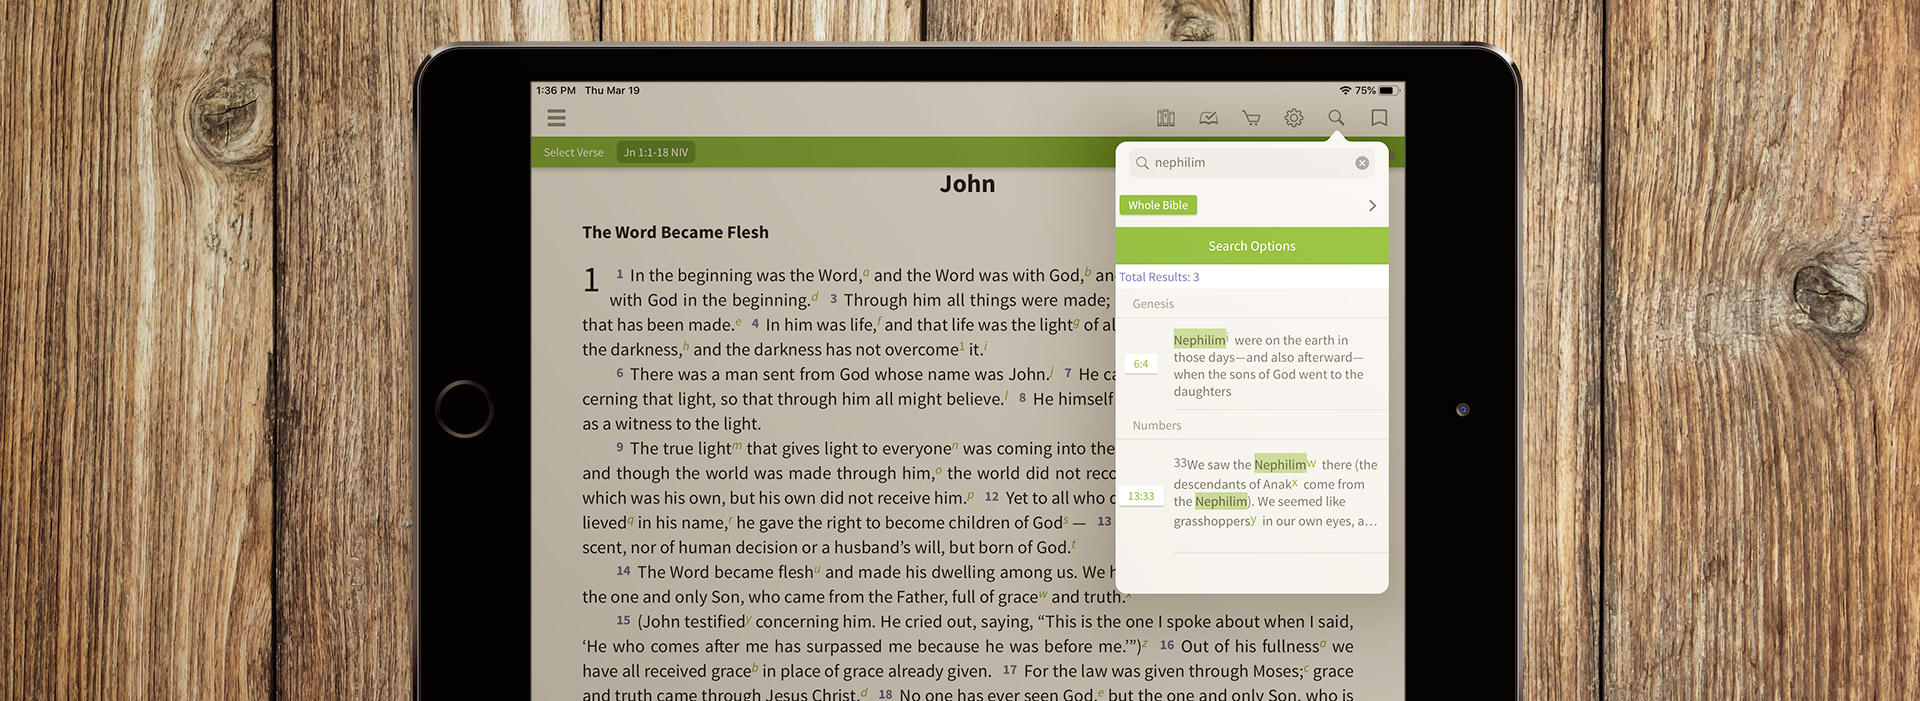 Olive Tree's Search feature looking for nephilim on an iPad